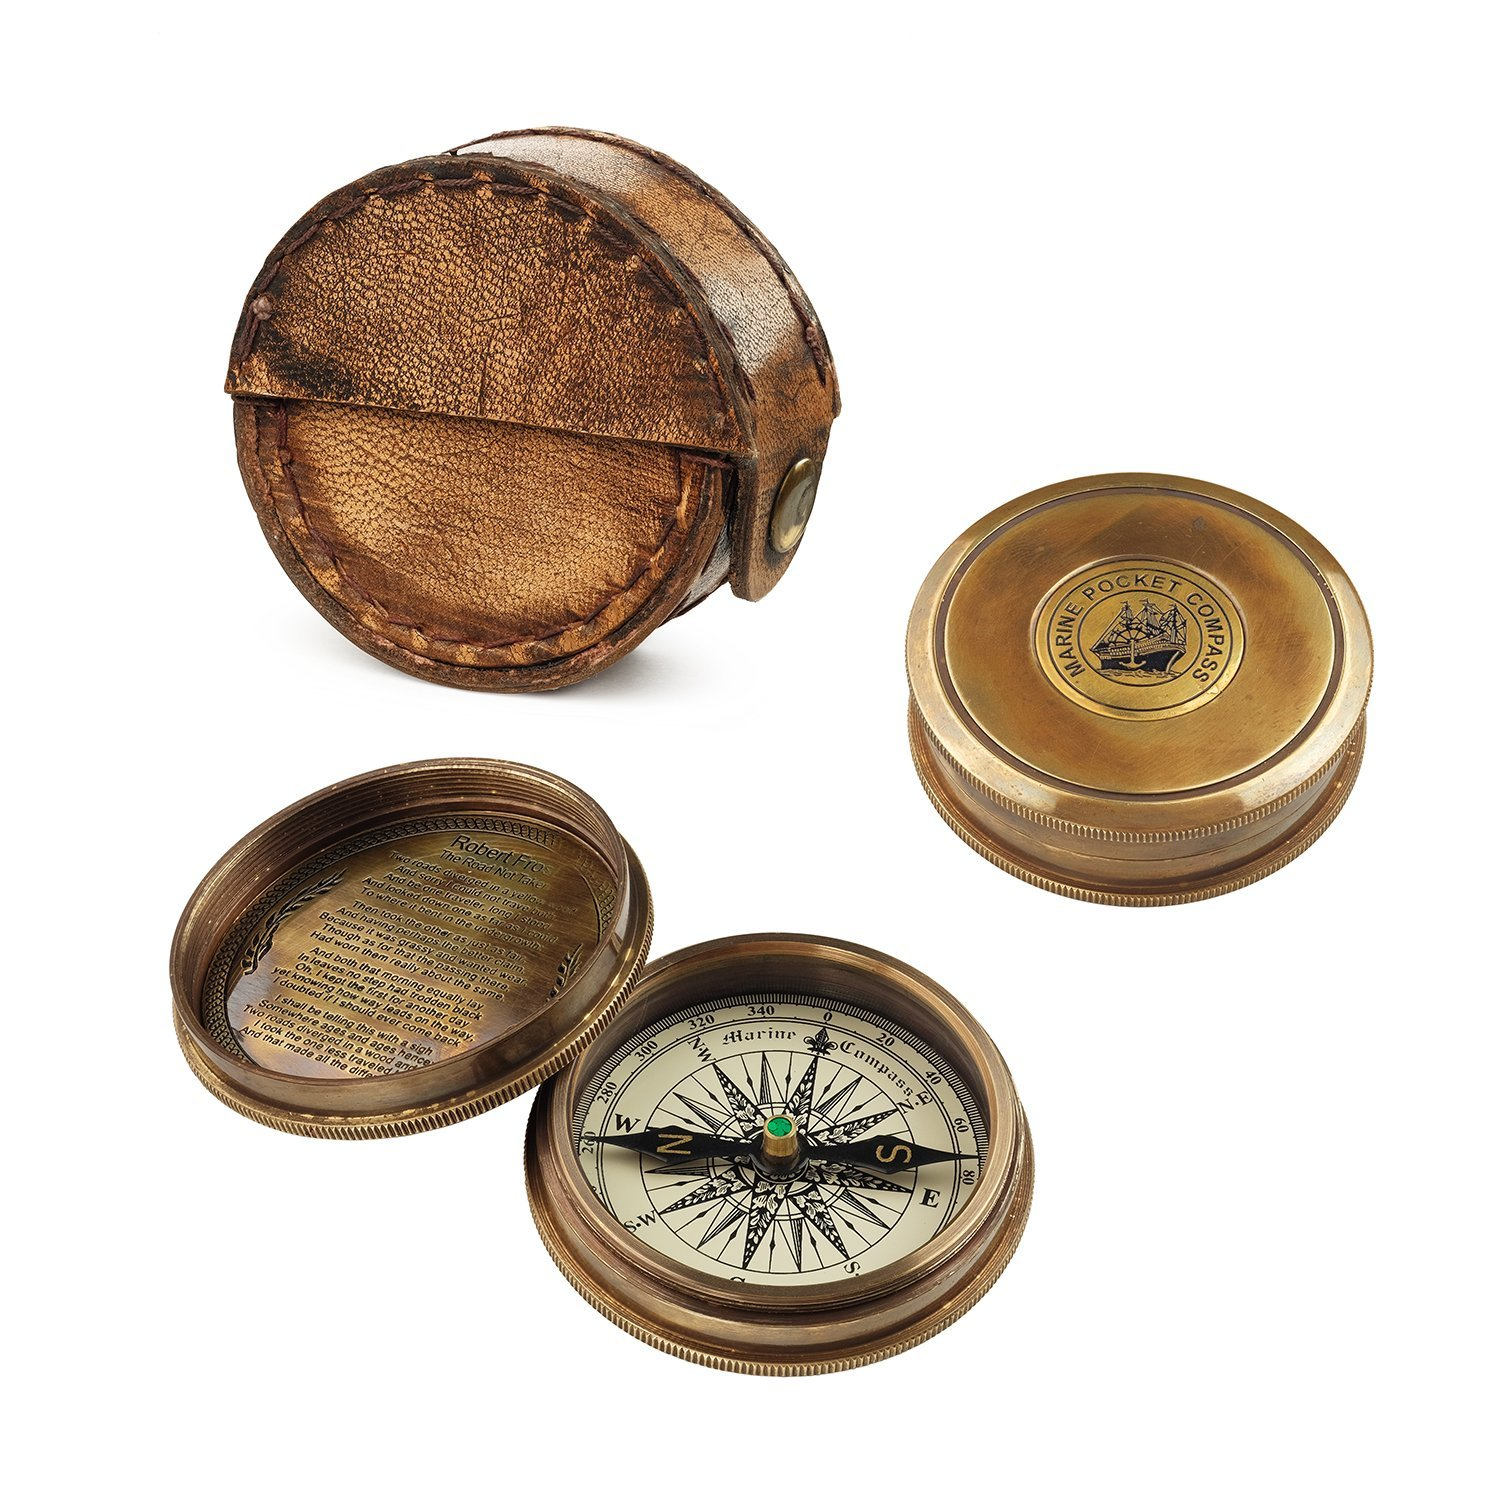 "Компас сувенир ""MARINE POCKET COMPASS"""